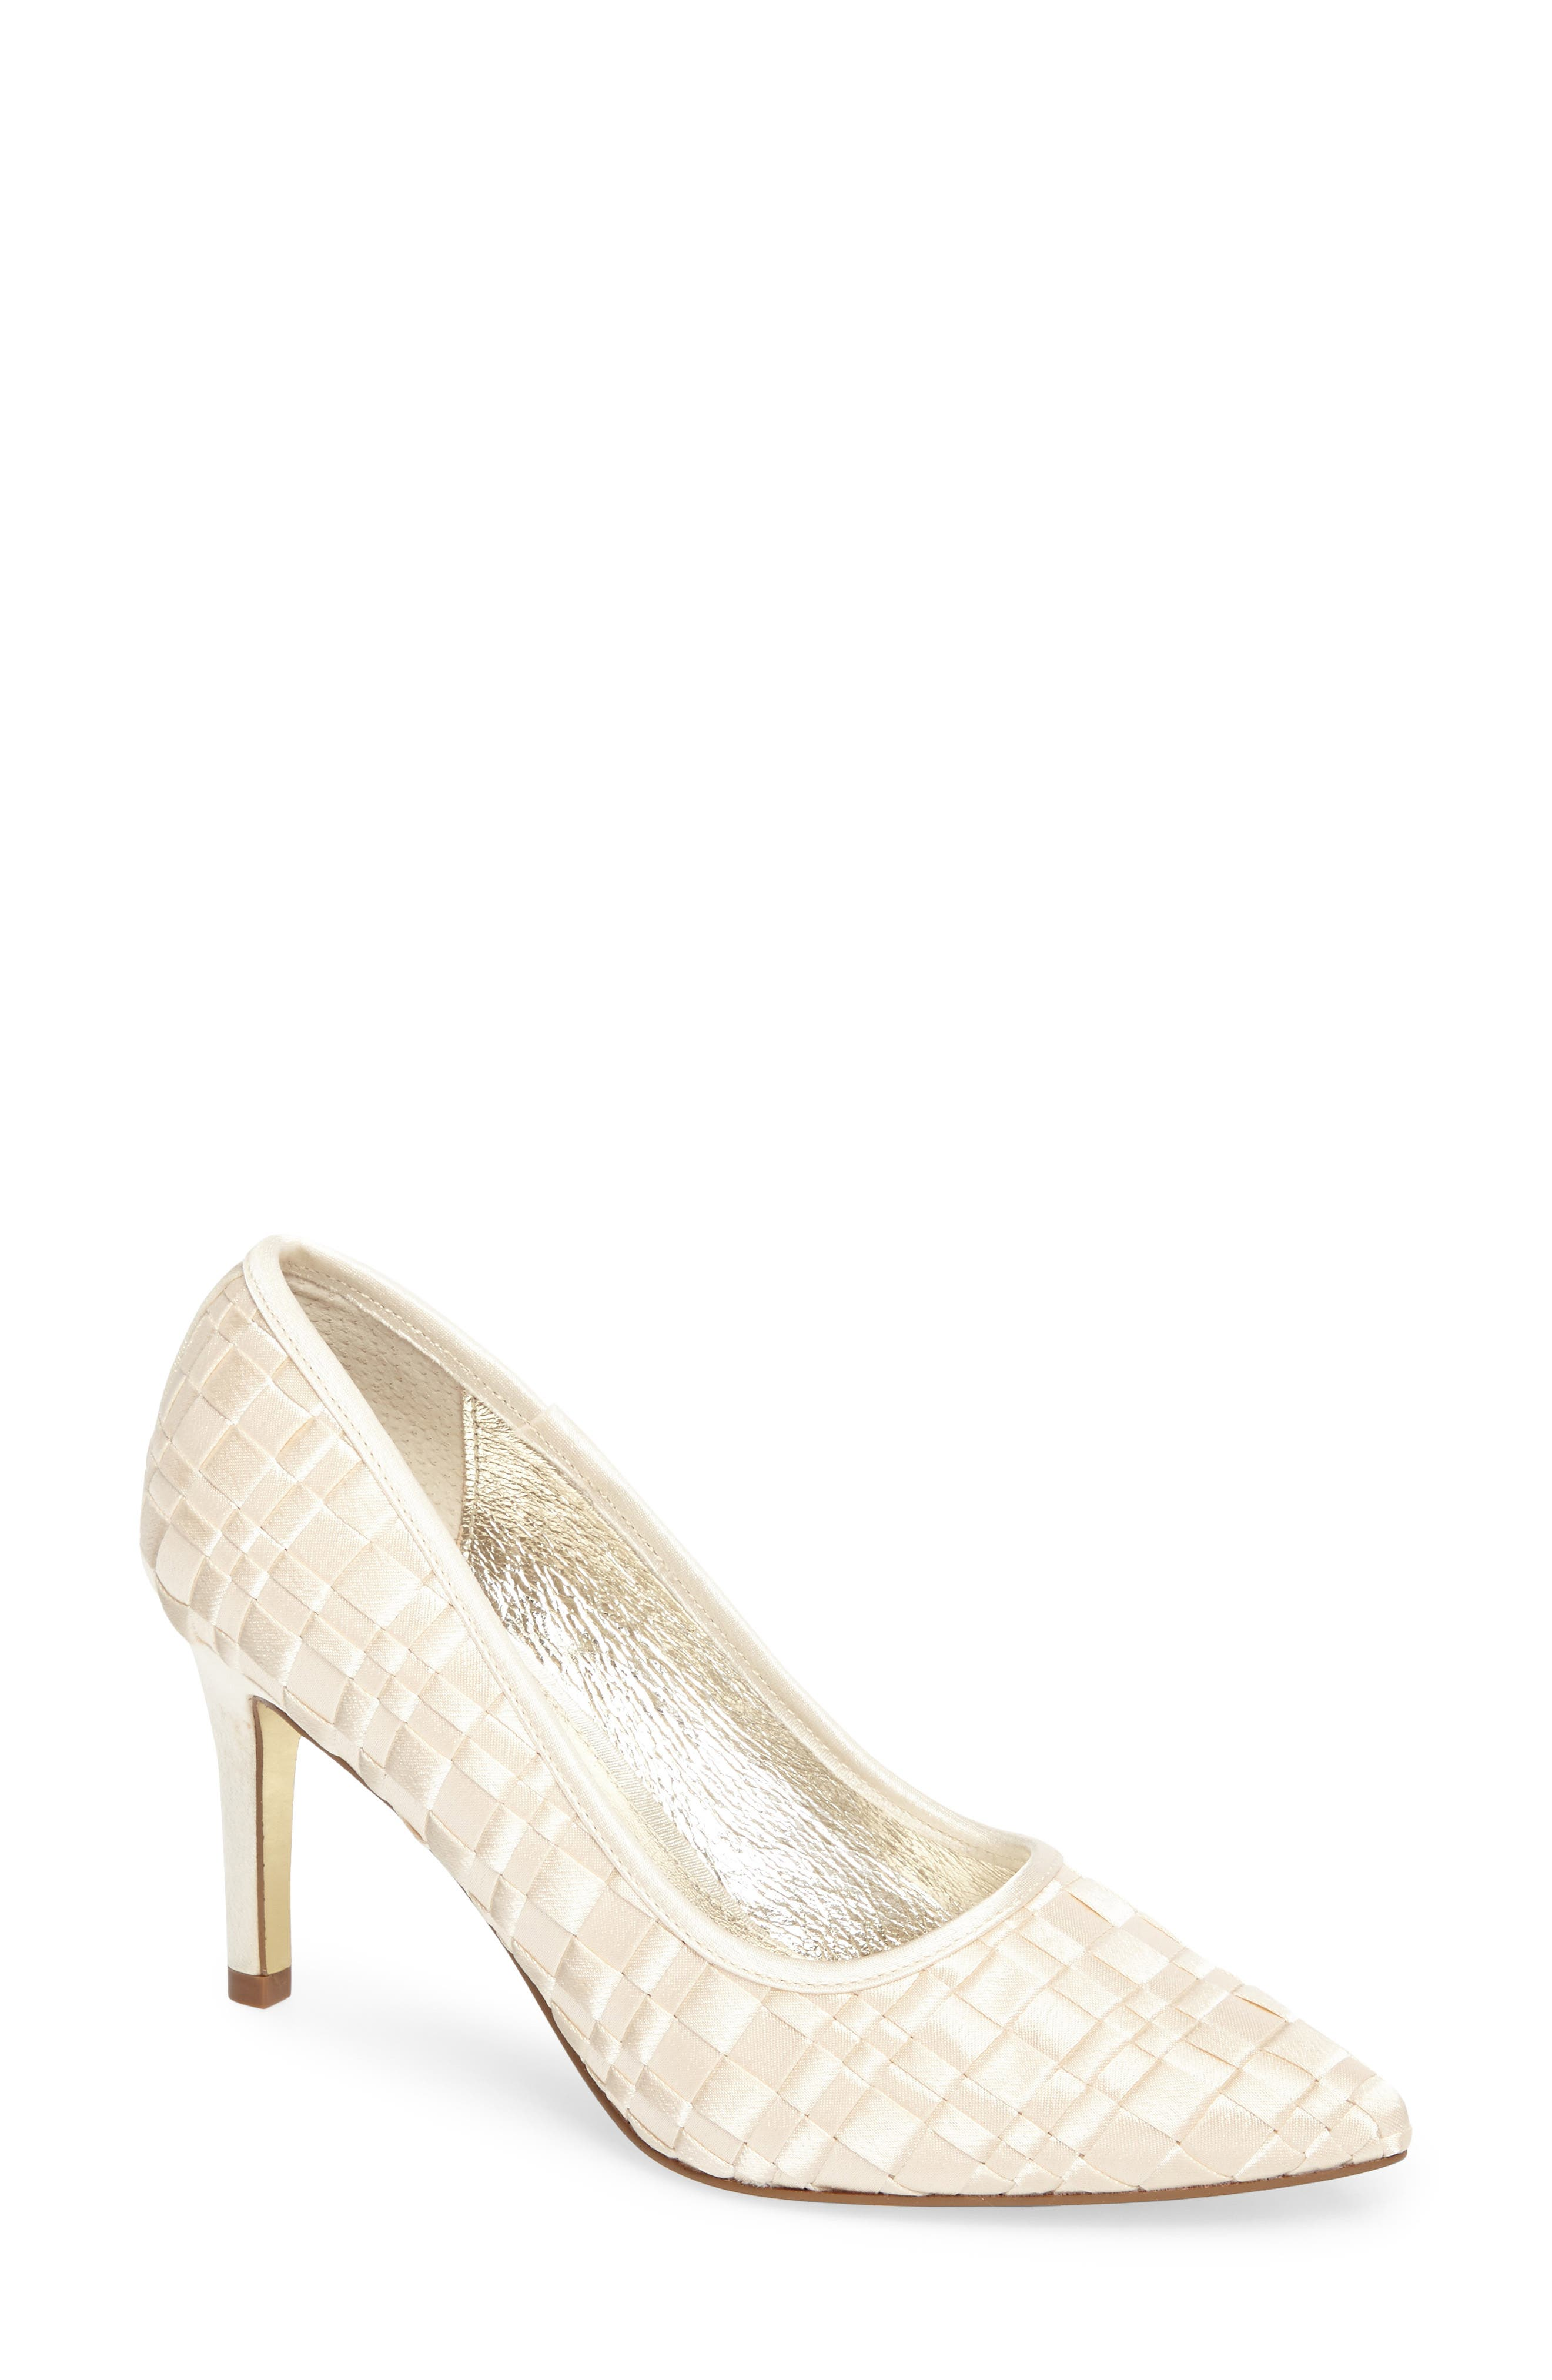 Hasting Pointy Toe Pump,                         Main,                         color, Champagne Satin